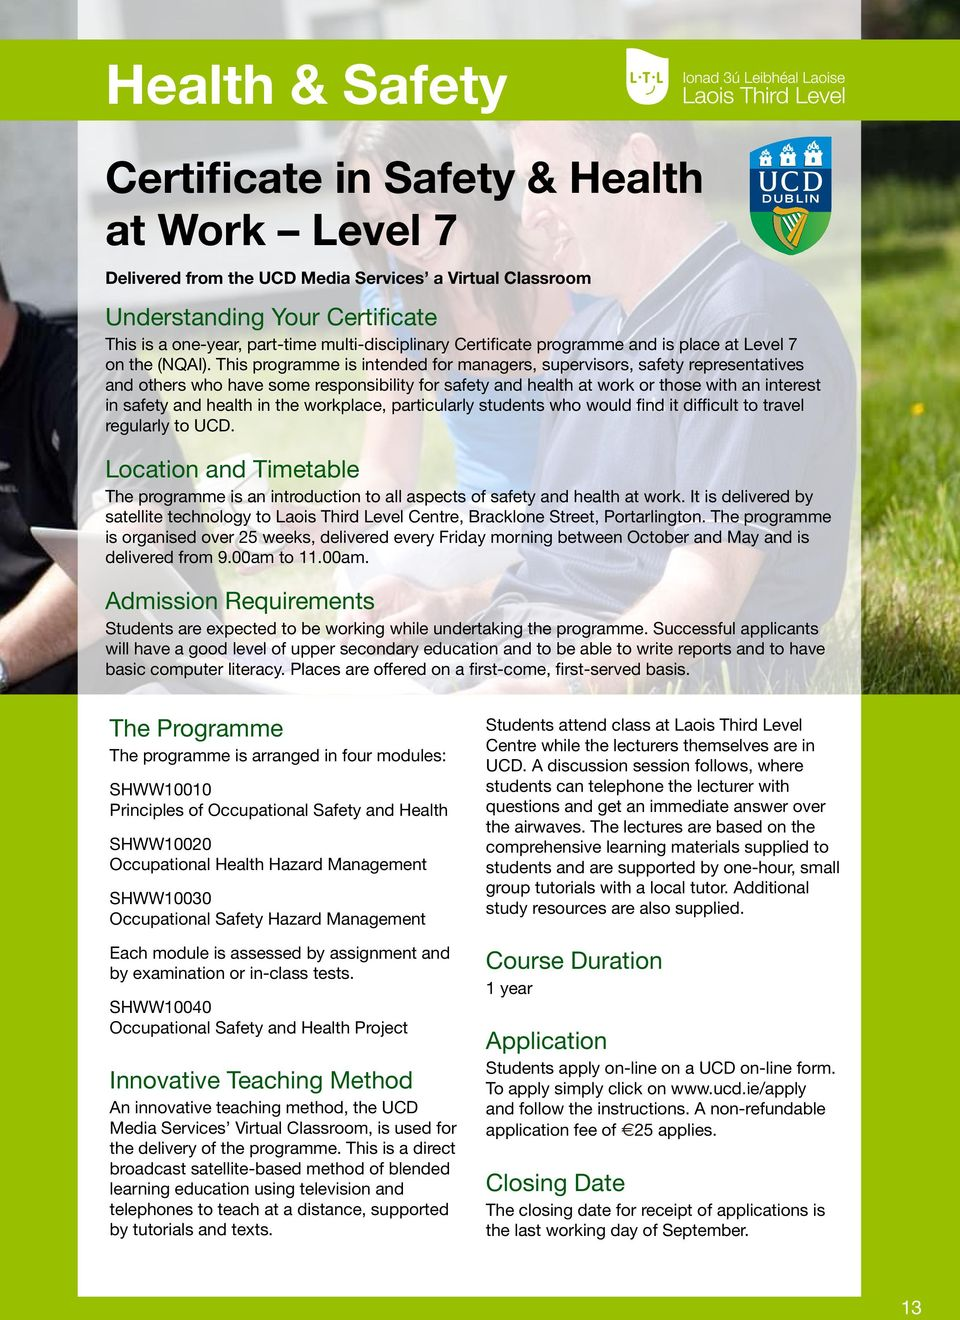 This programme is intended for managers, supervisors, safety representatives and others who have some responsibility for safety and health at work or those with an interest in safety and health in